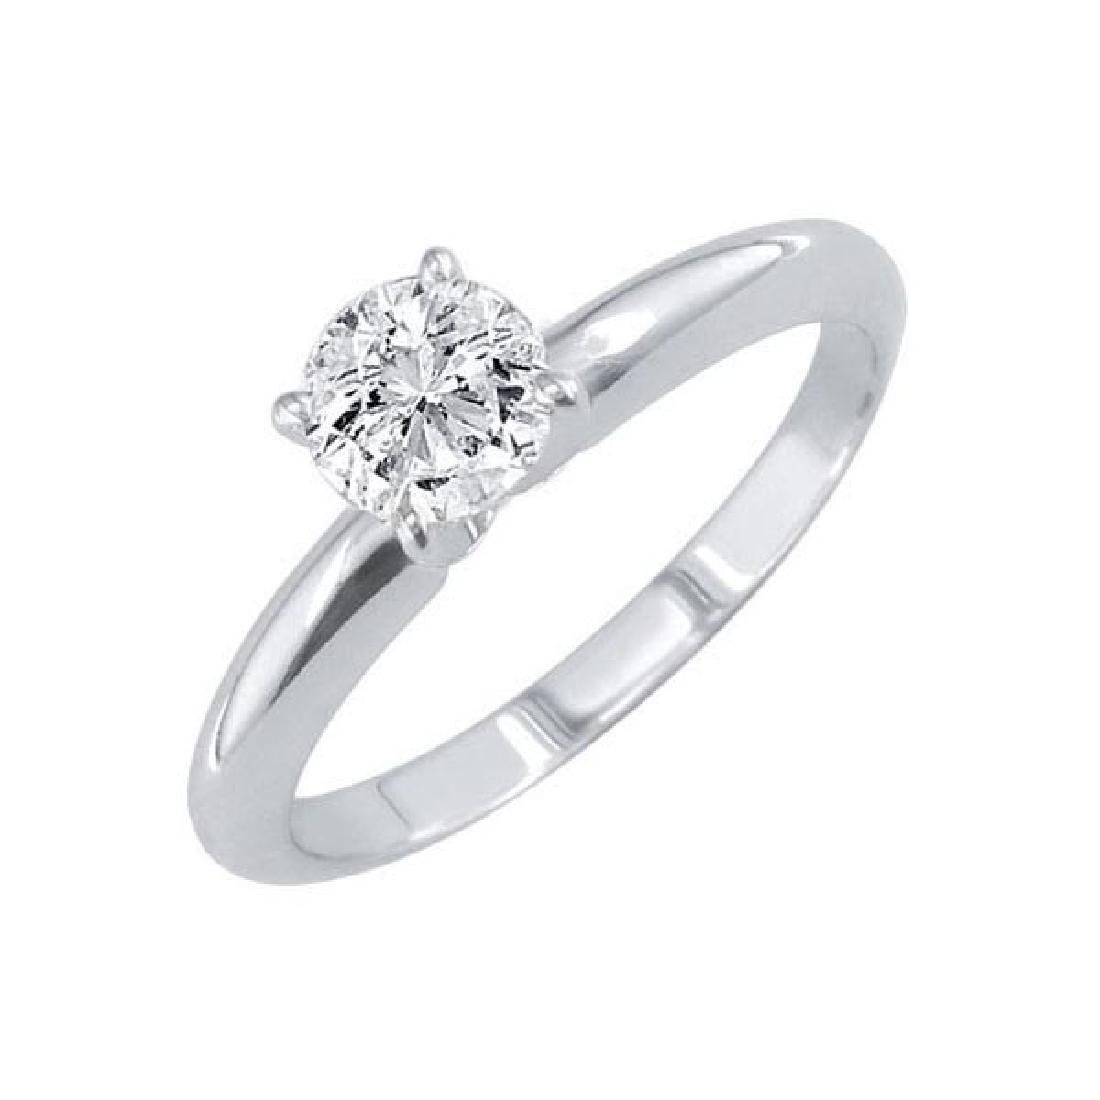 Certified 0.45 CTW Round Diamond Solitaire 14k Ring F/S